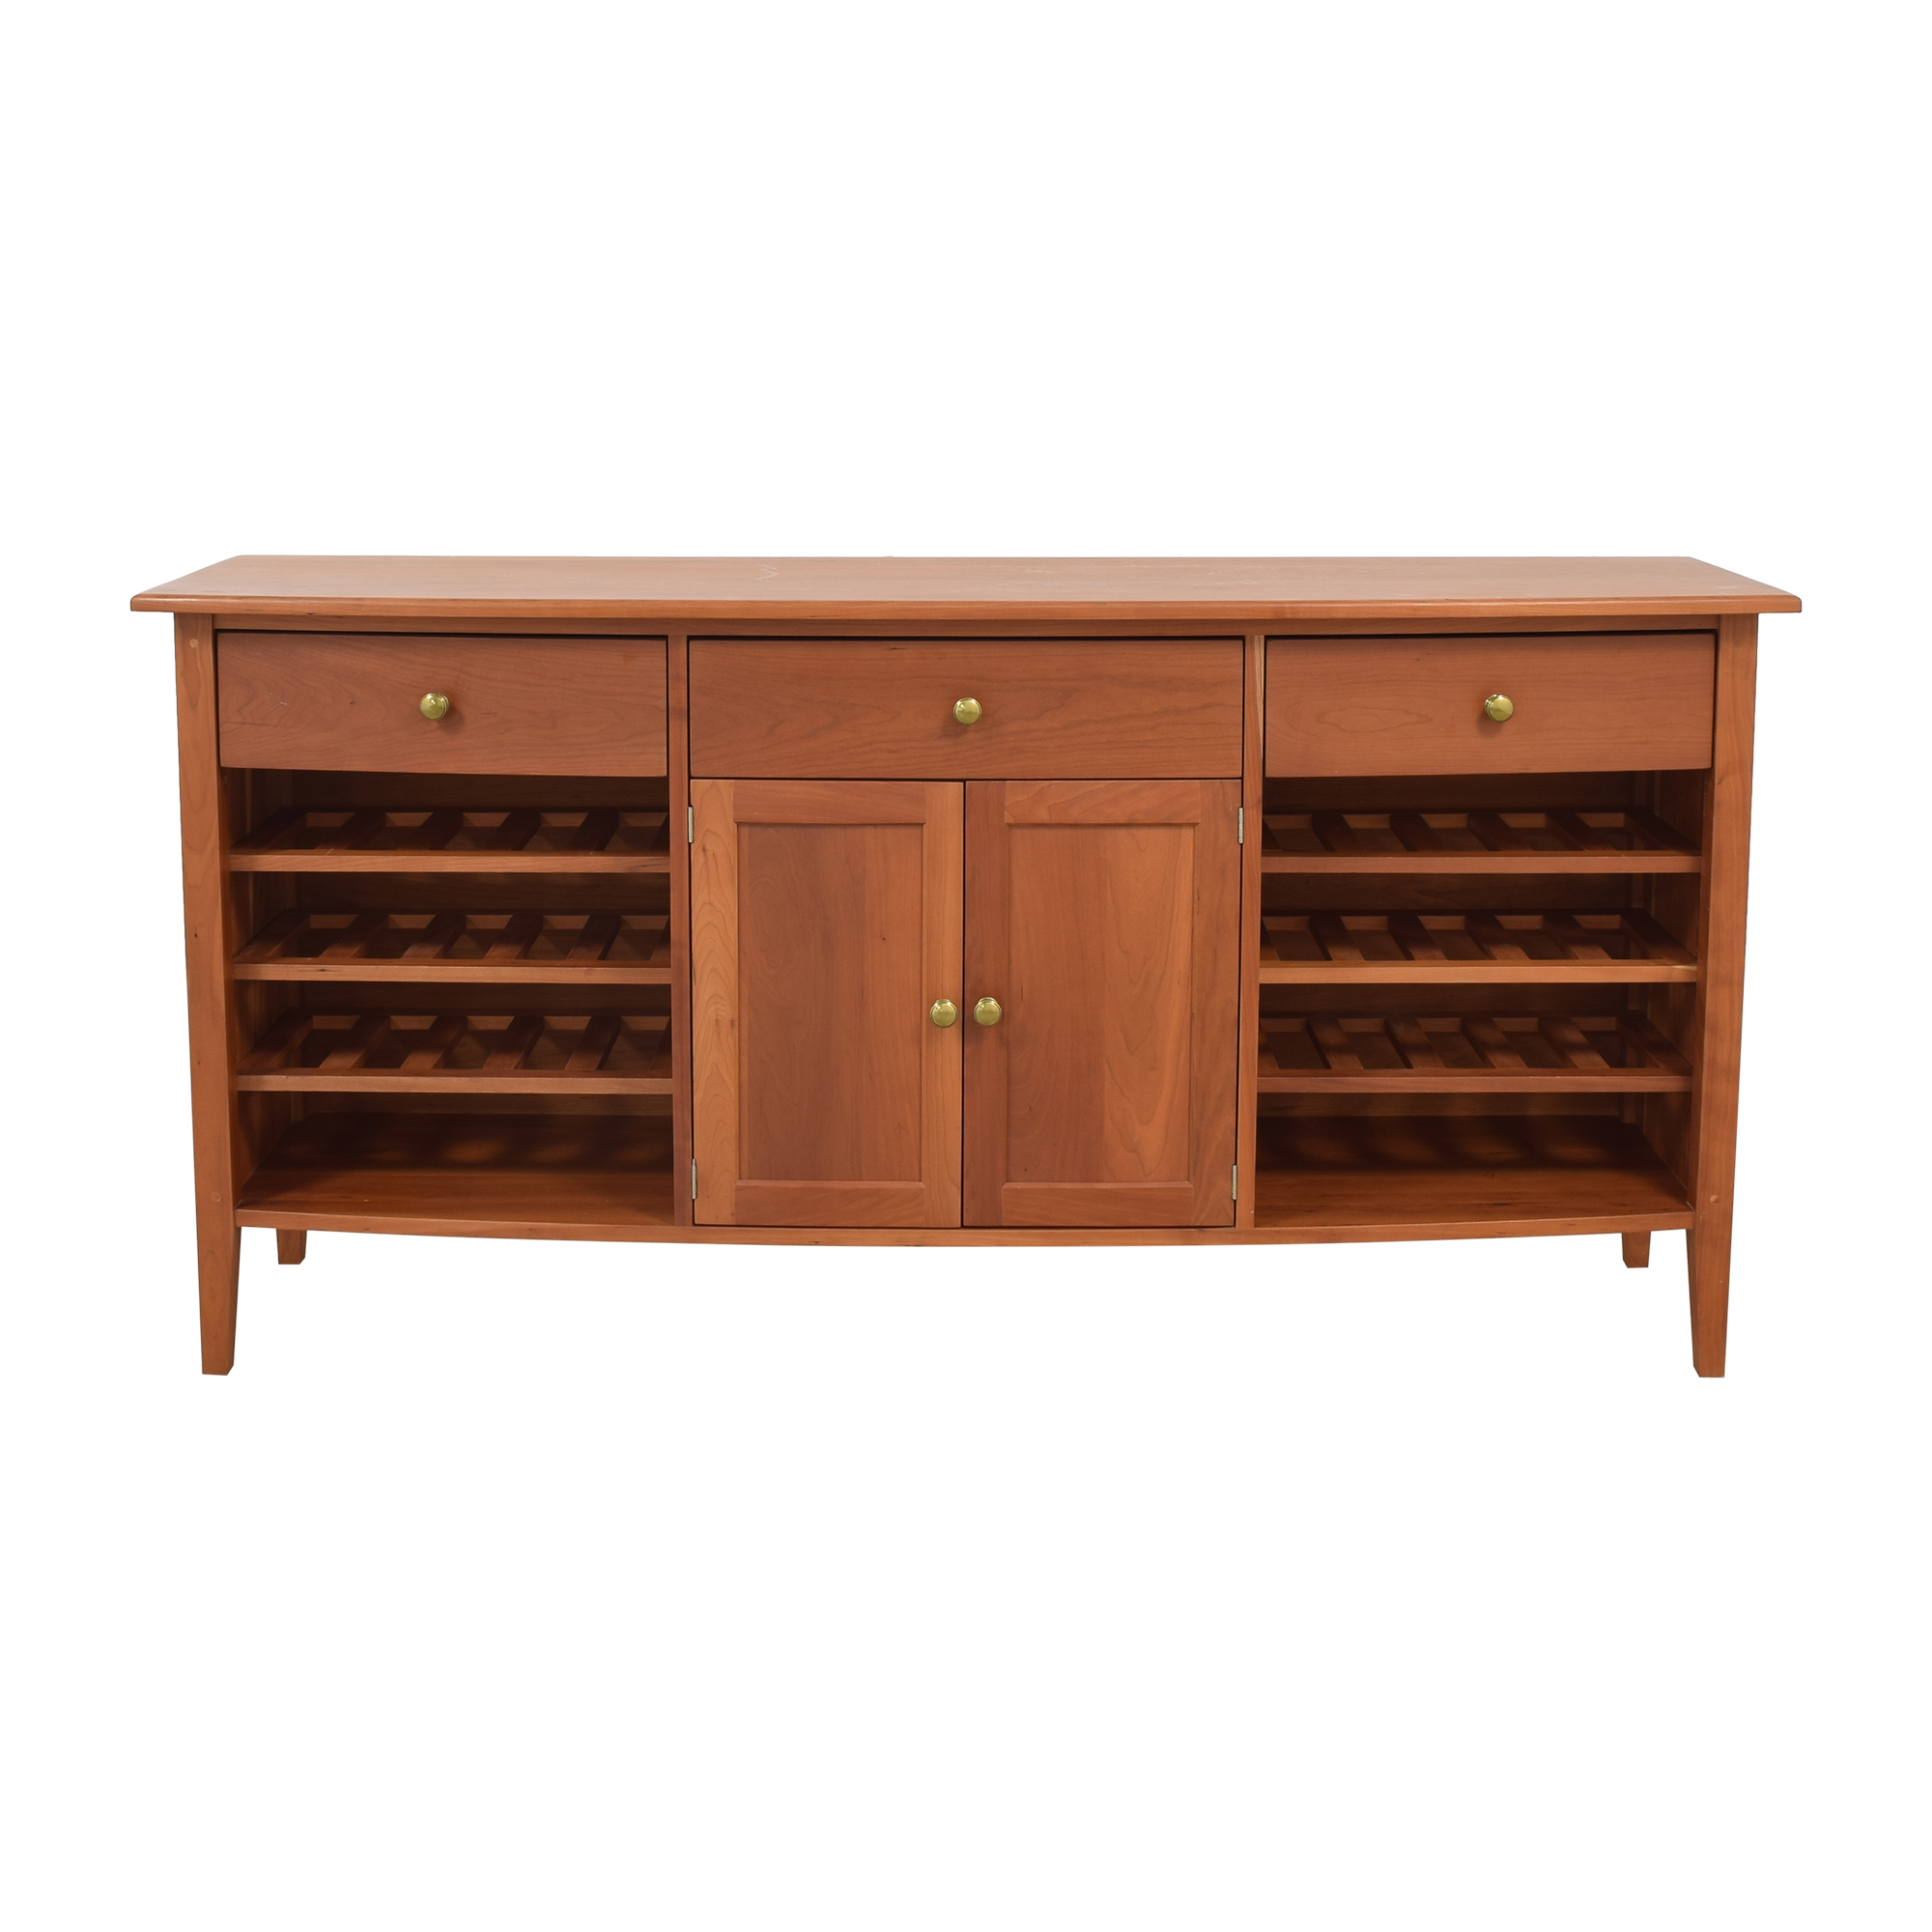 Asher Benjamin Studio Asher Benjamin Studio Sideboard for sale